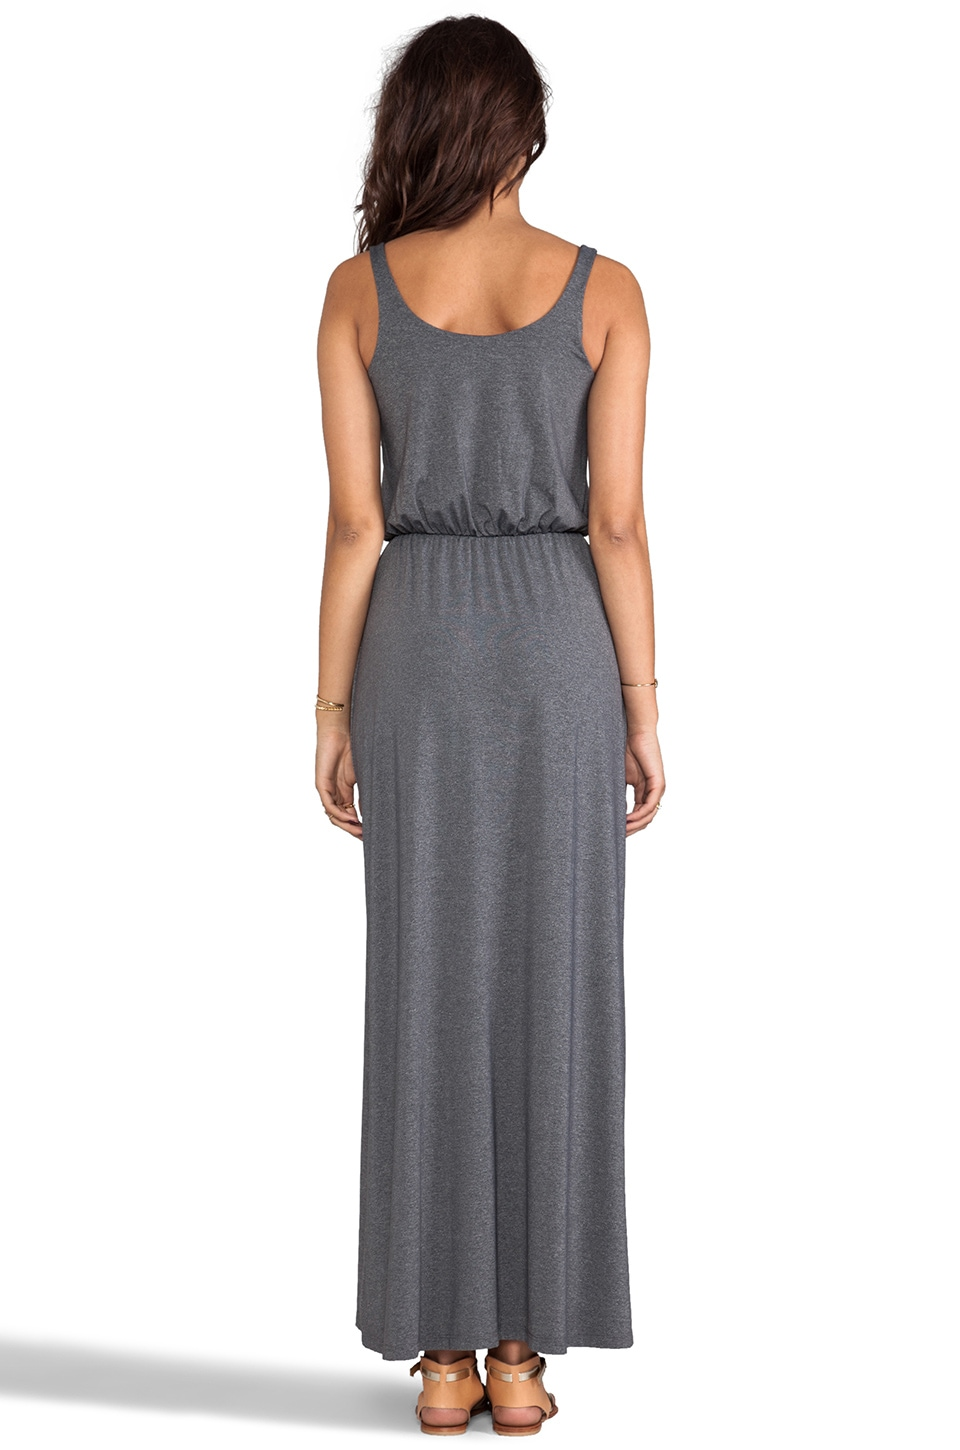 "Susana Monaco Melange Terri 42"" Dress in Gravel"